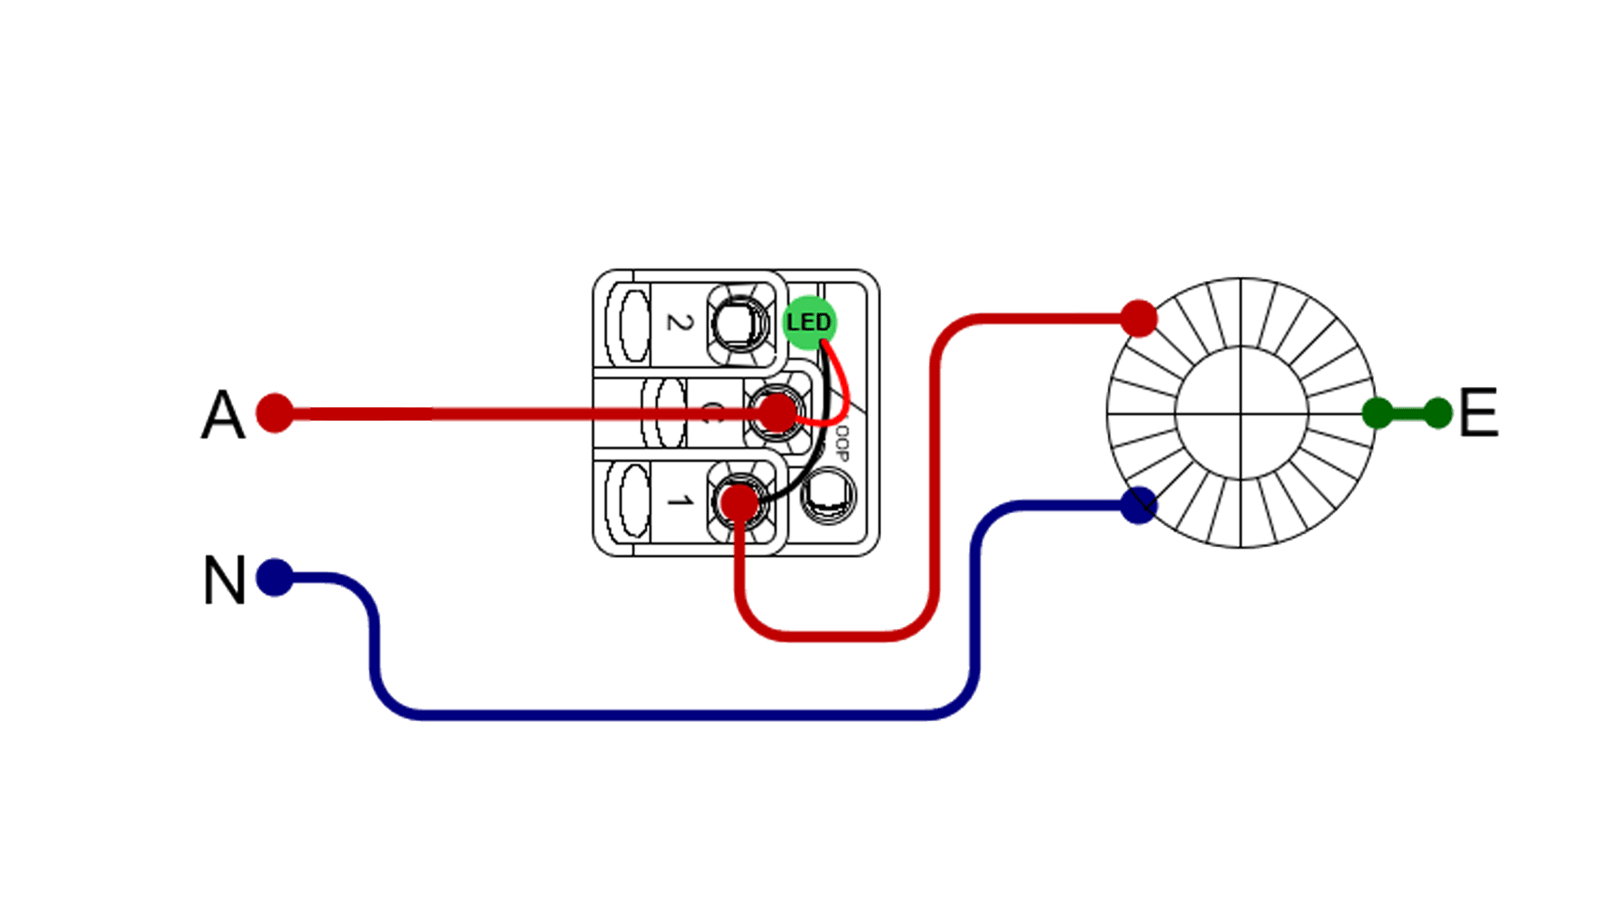 Wiring Diagram For A Dimmer Switch For Led Lights